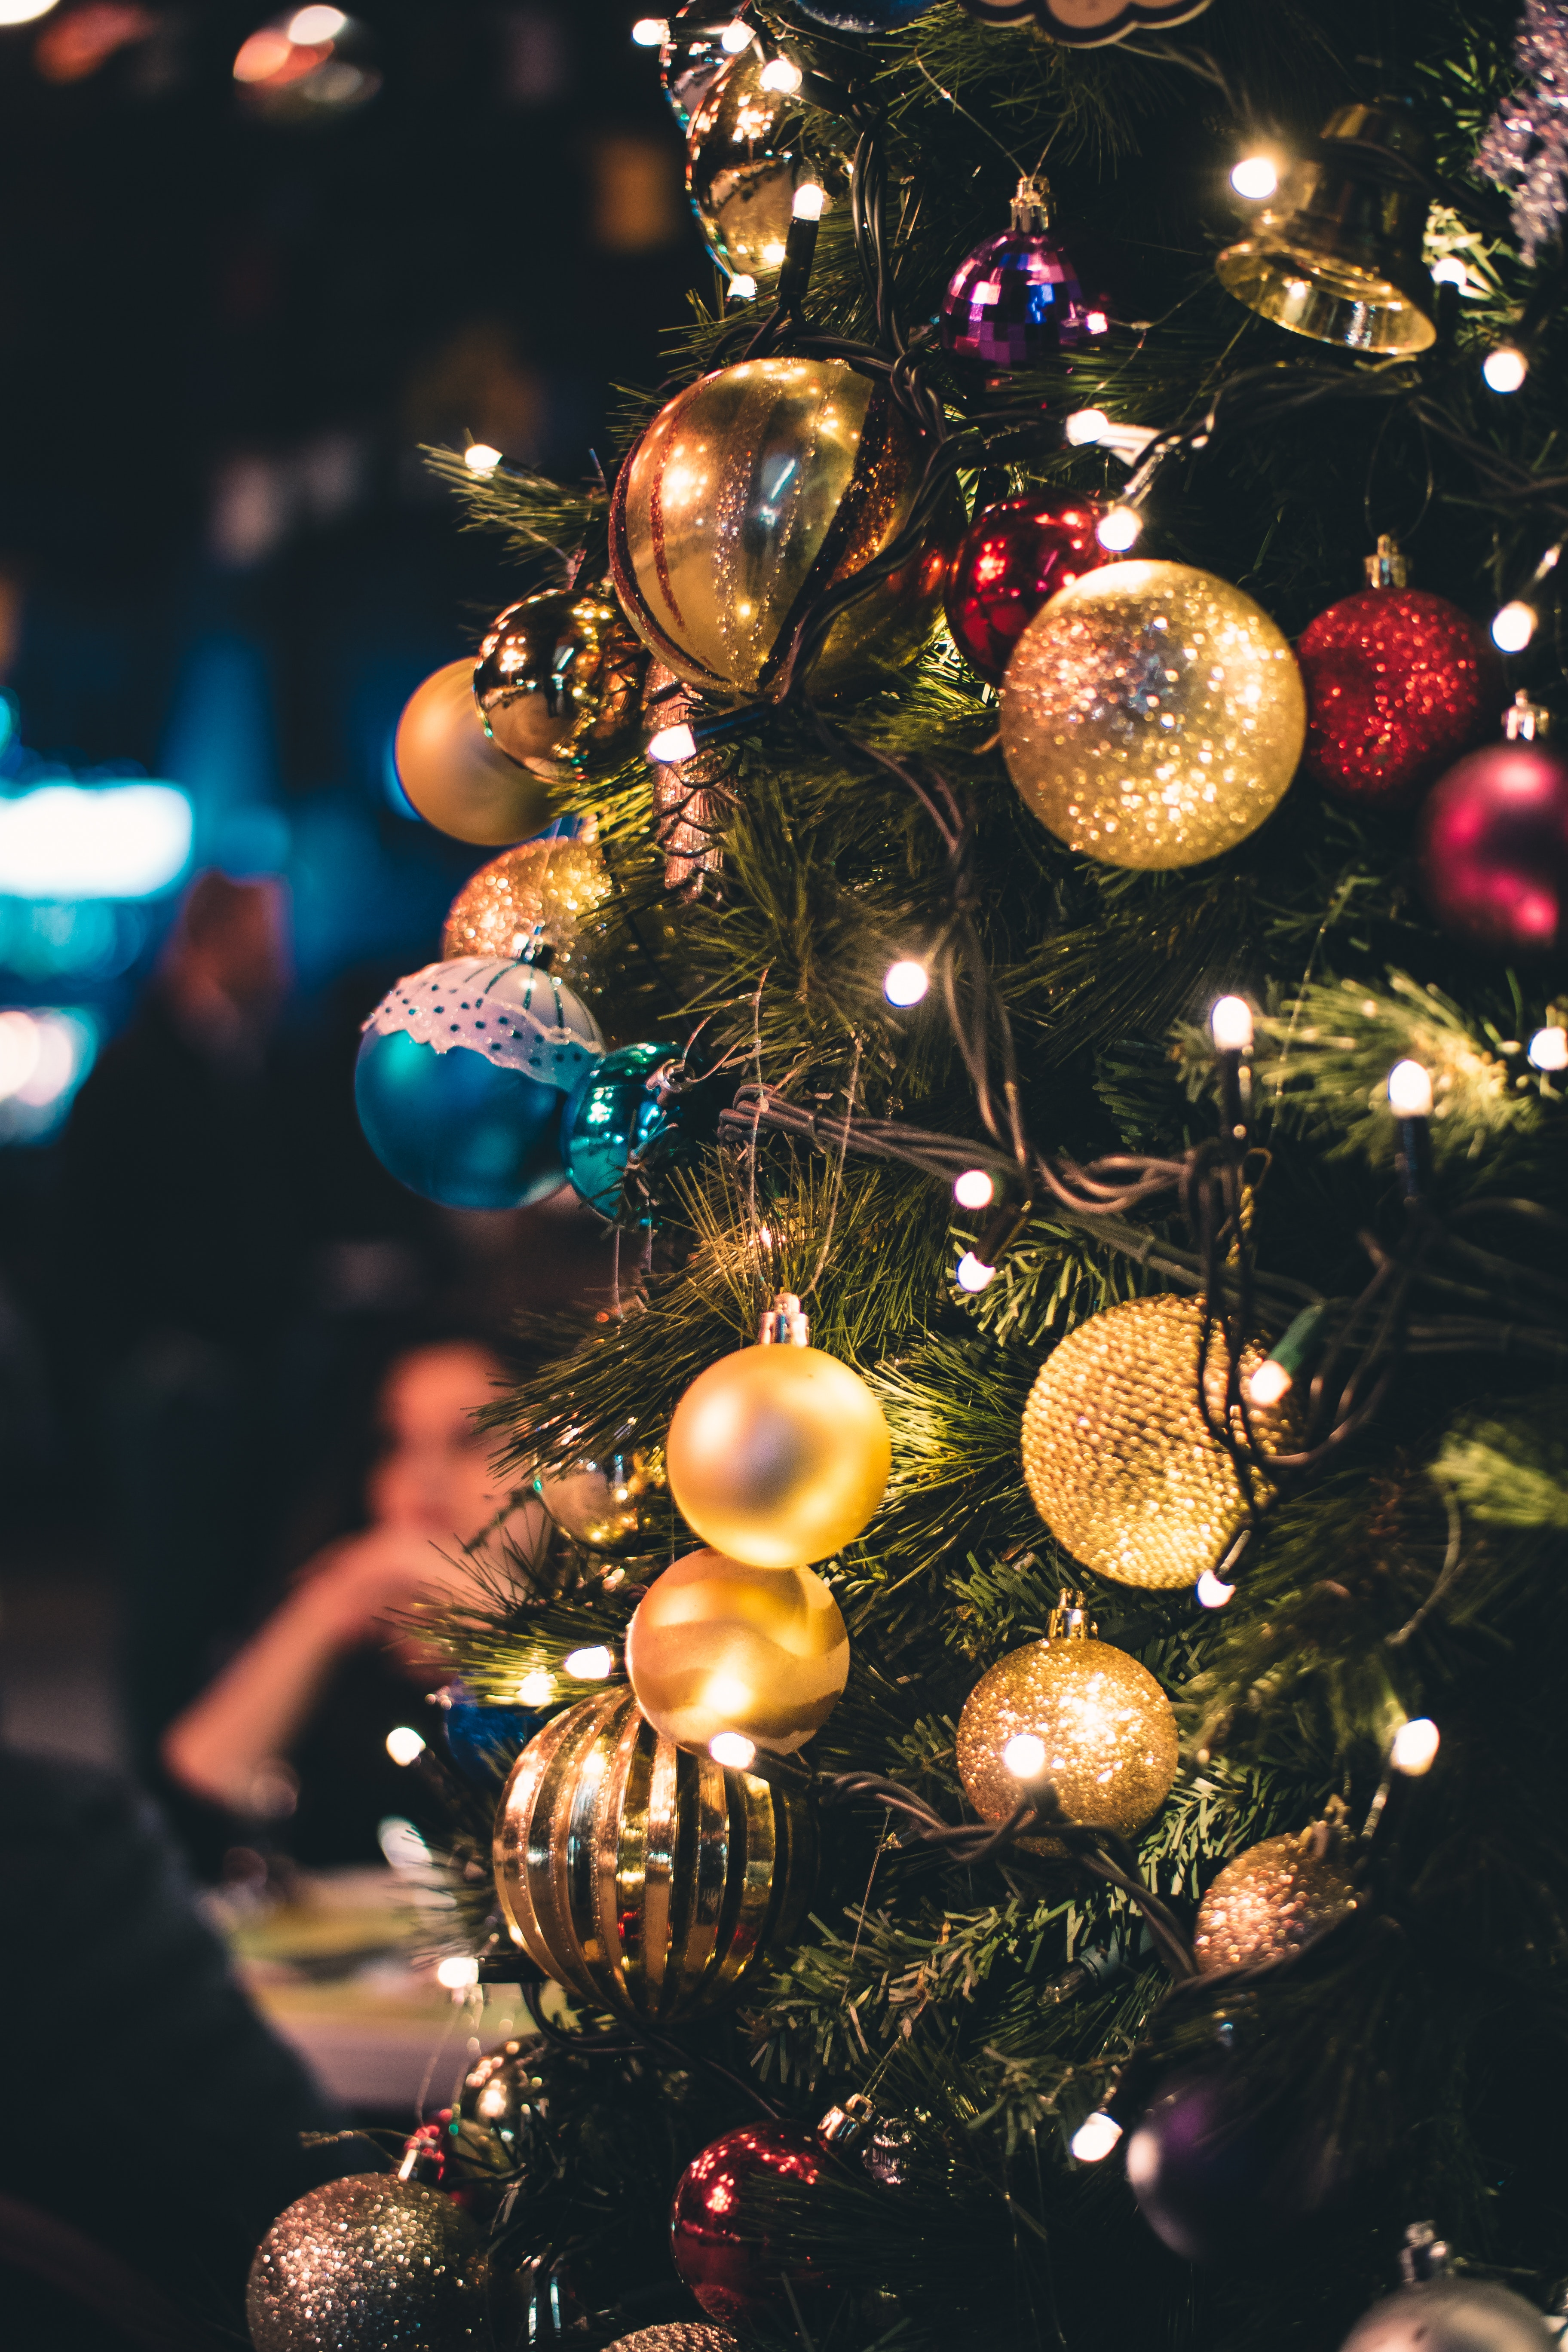 Green and Gold-colored Lighted Christmas Tree, Hanging, Tree, Traditional, Threads, HQ Photo